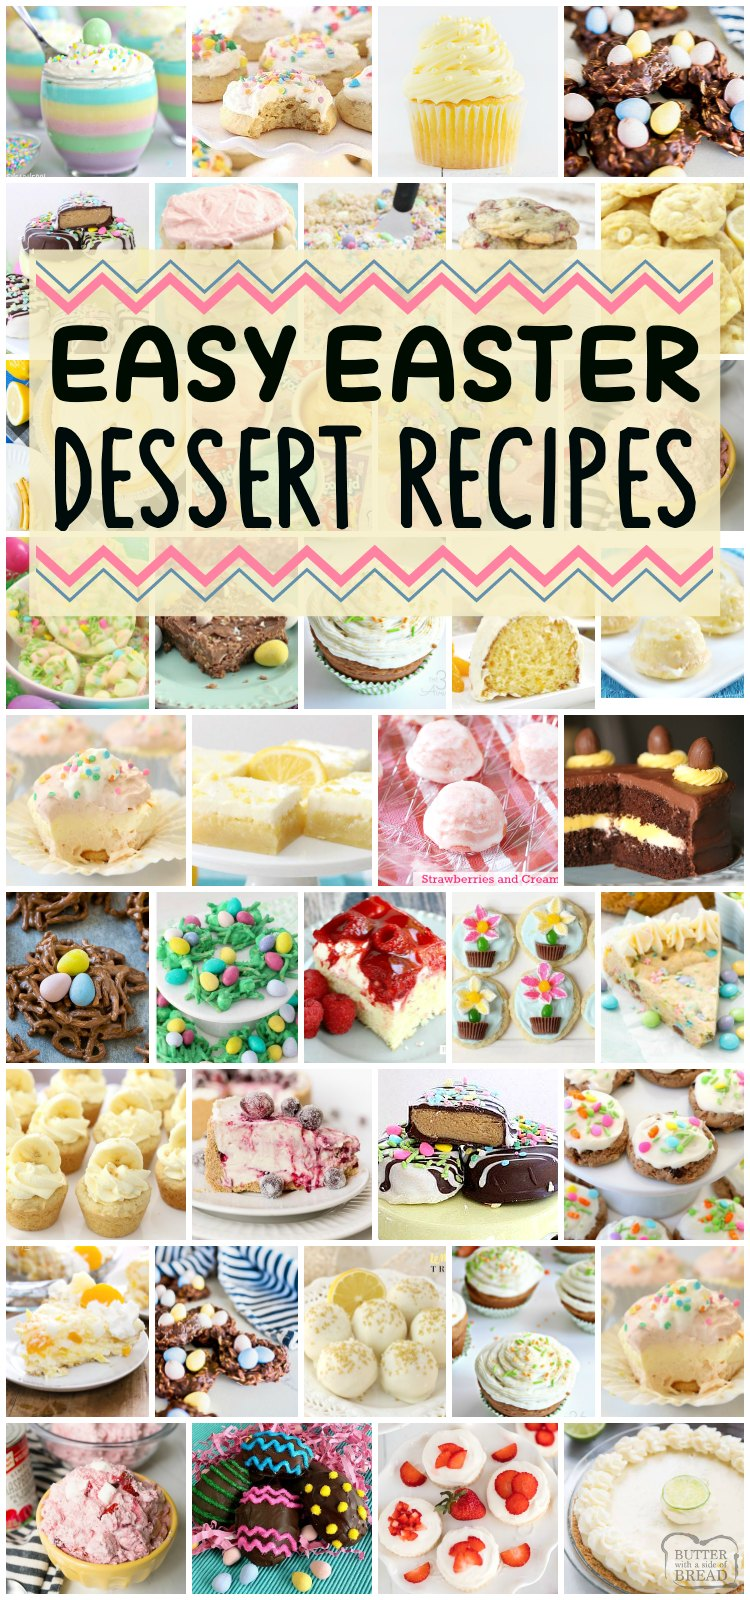 Easy Easter Desserts that everyone will enjoy! All these favorite Easter recipes, from the Peanut Butter Easter Eggs to the Little Lemon Drops, are some of our favorite treats for this special holiday! #Easter #dessert #easyEaster #pastel #candy #treats #easyrecipes from BUTTER WITH A SIDE OF BREAD